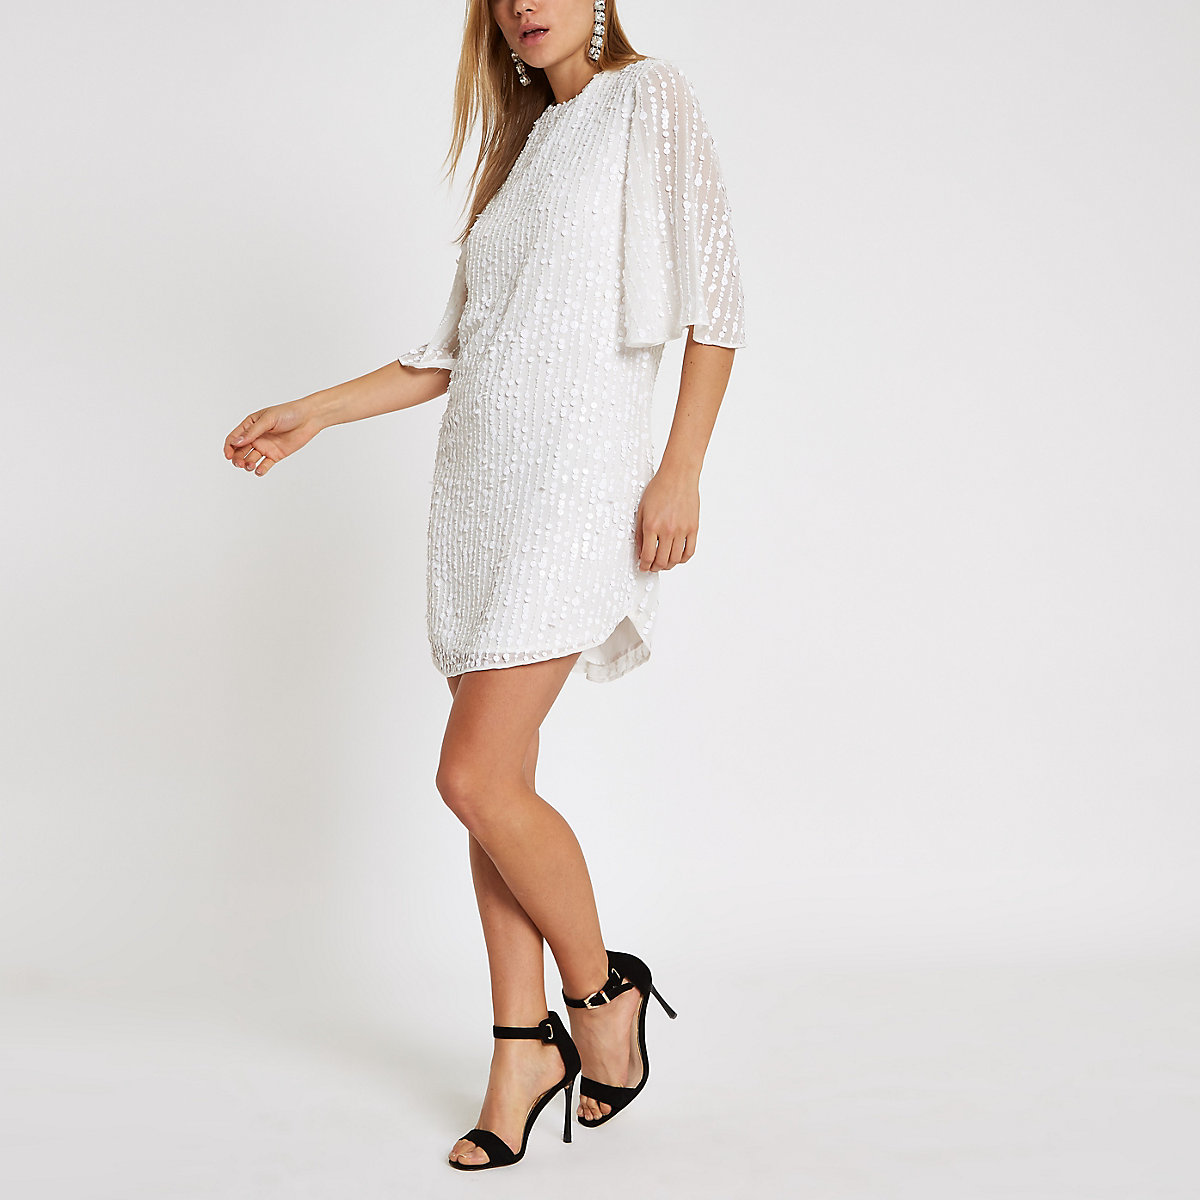 White sequin swing dress